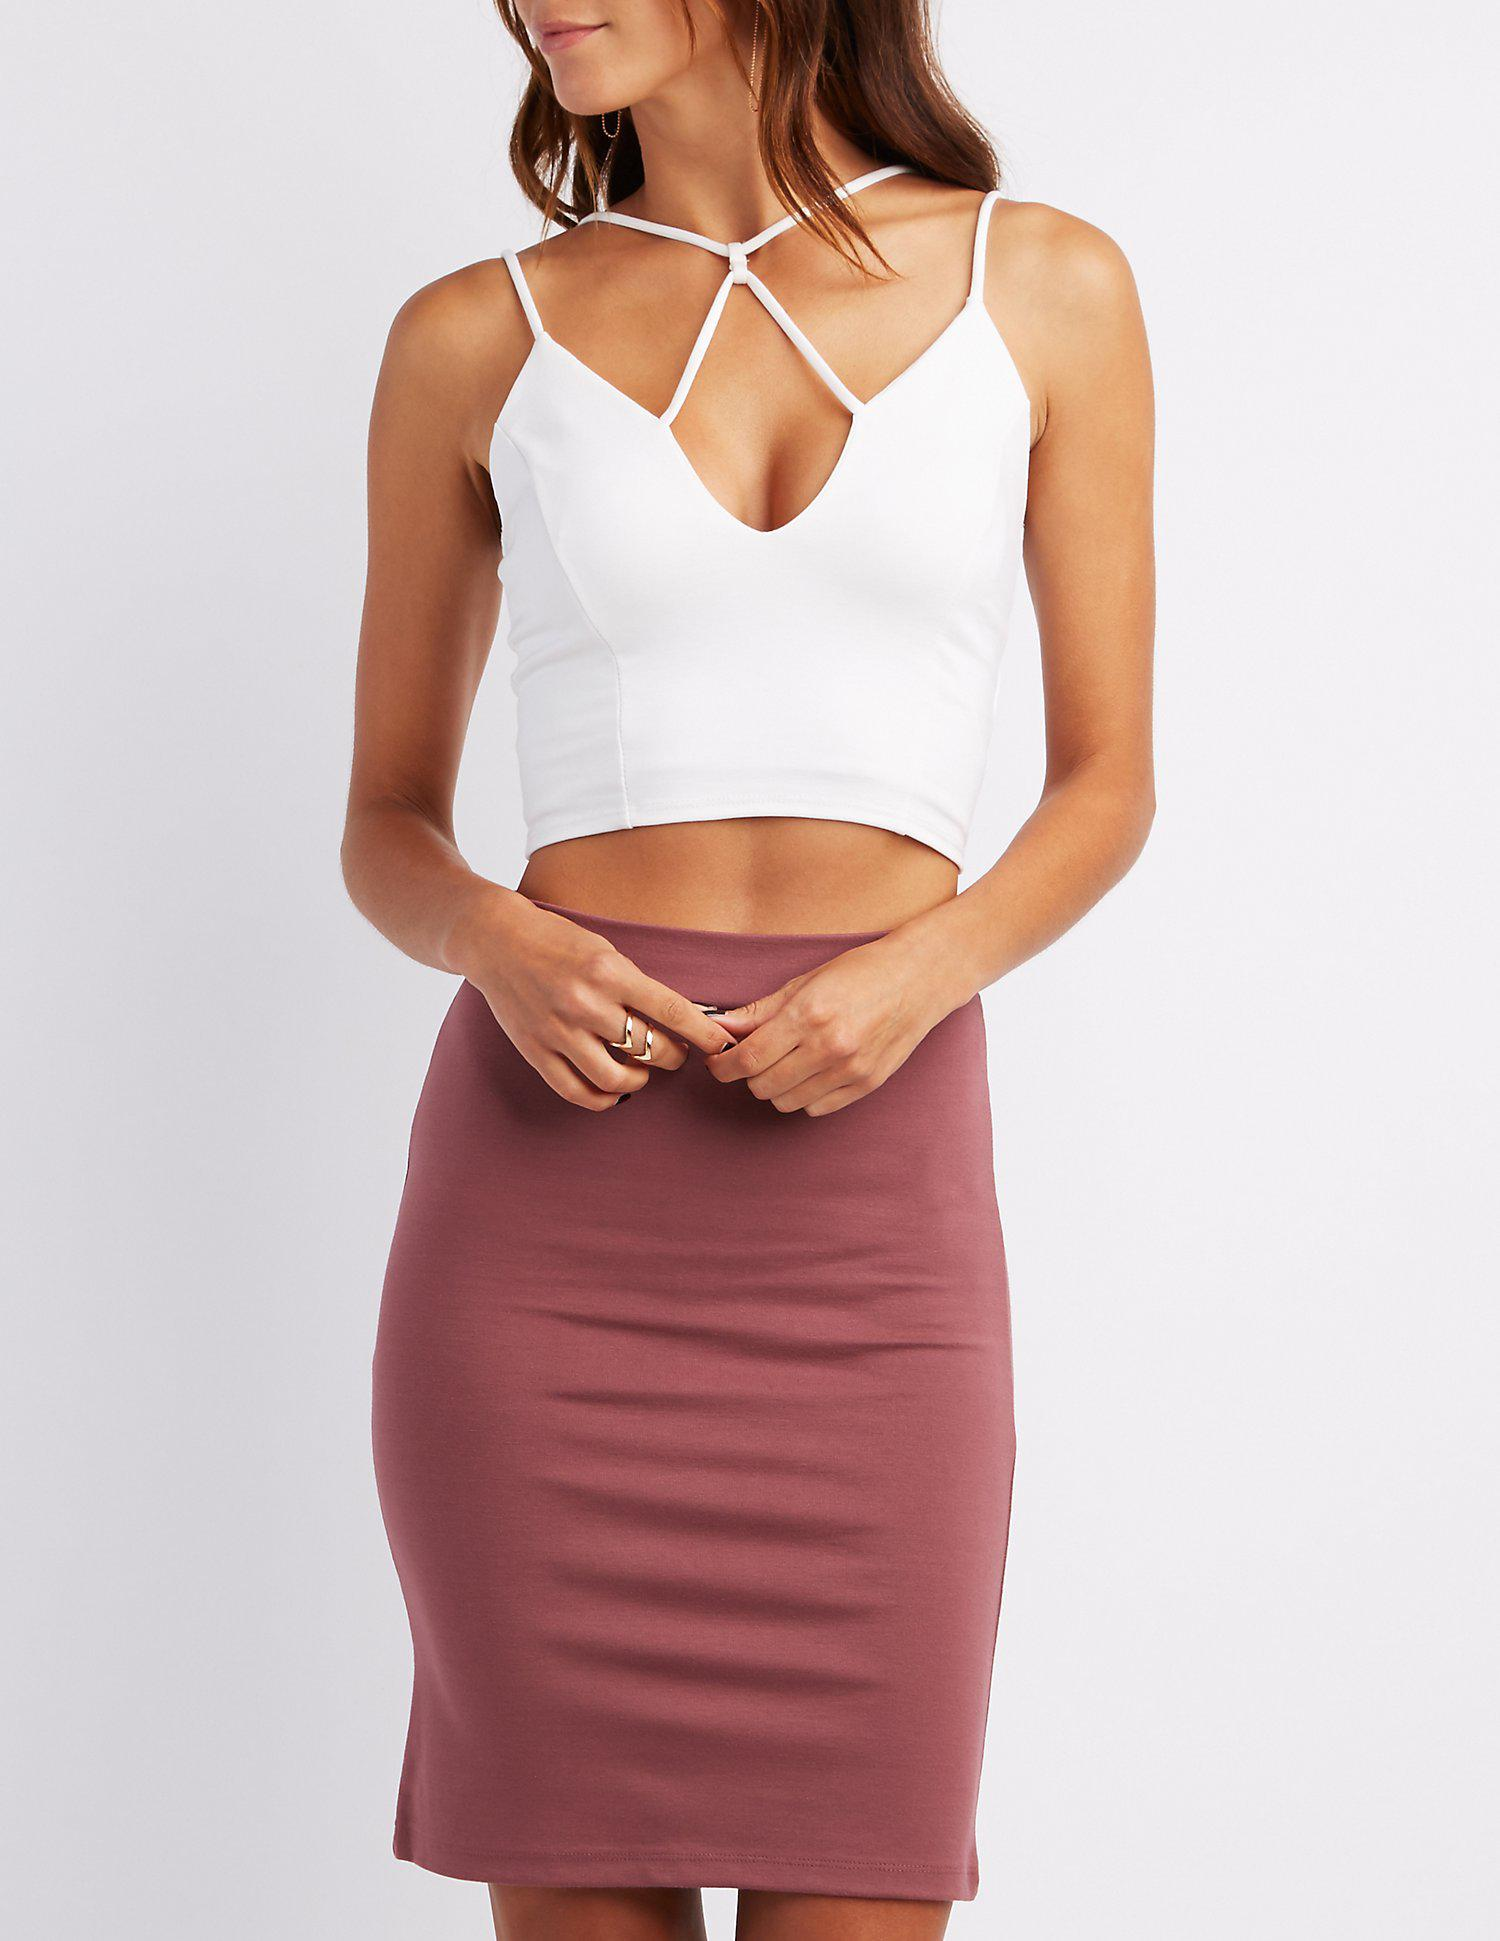 f1ab6bf0f01 Lyst - Charlotte Russe Strappy Caged Crop Top in White